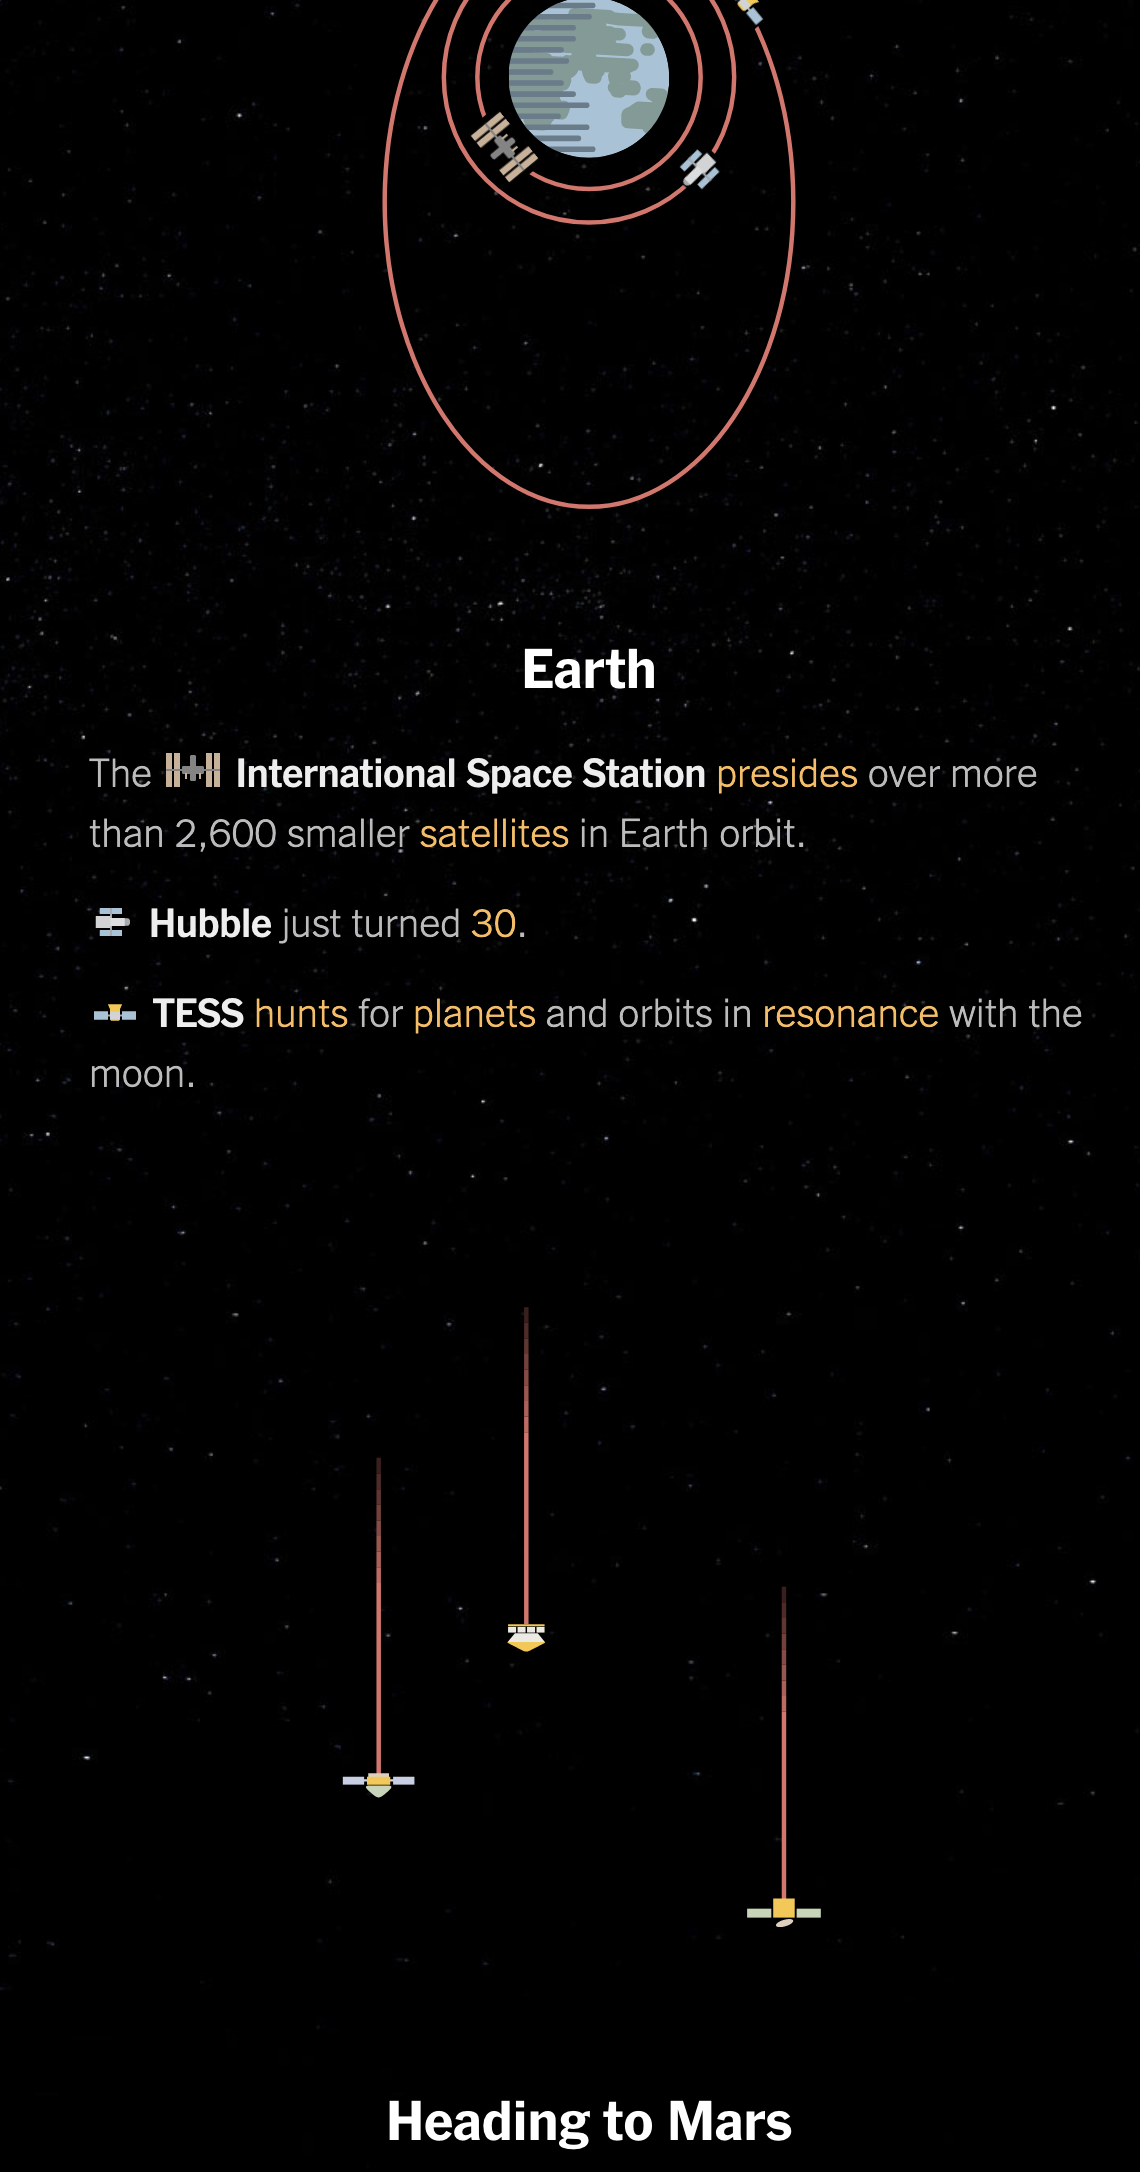 What spacecraft are in orbit of Earth and headed to Mars.